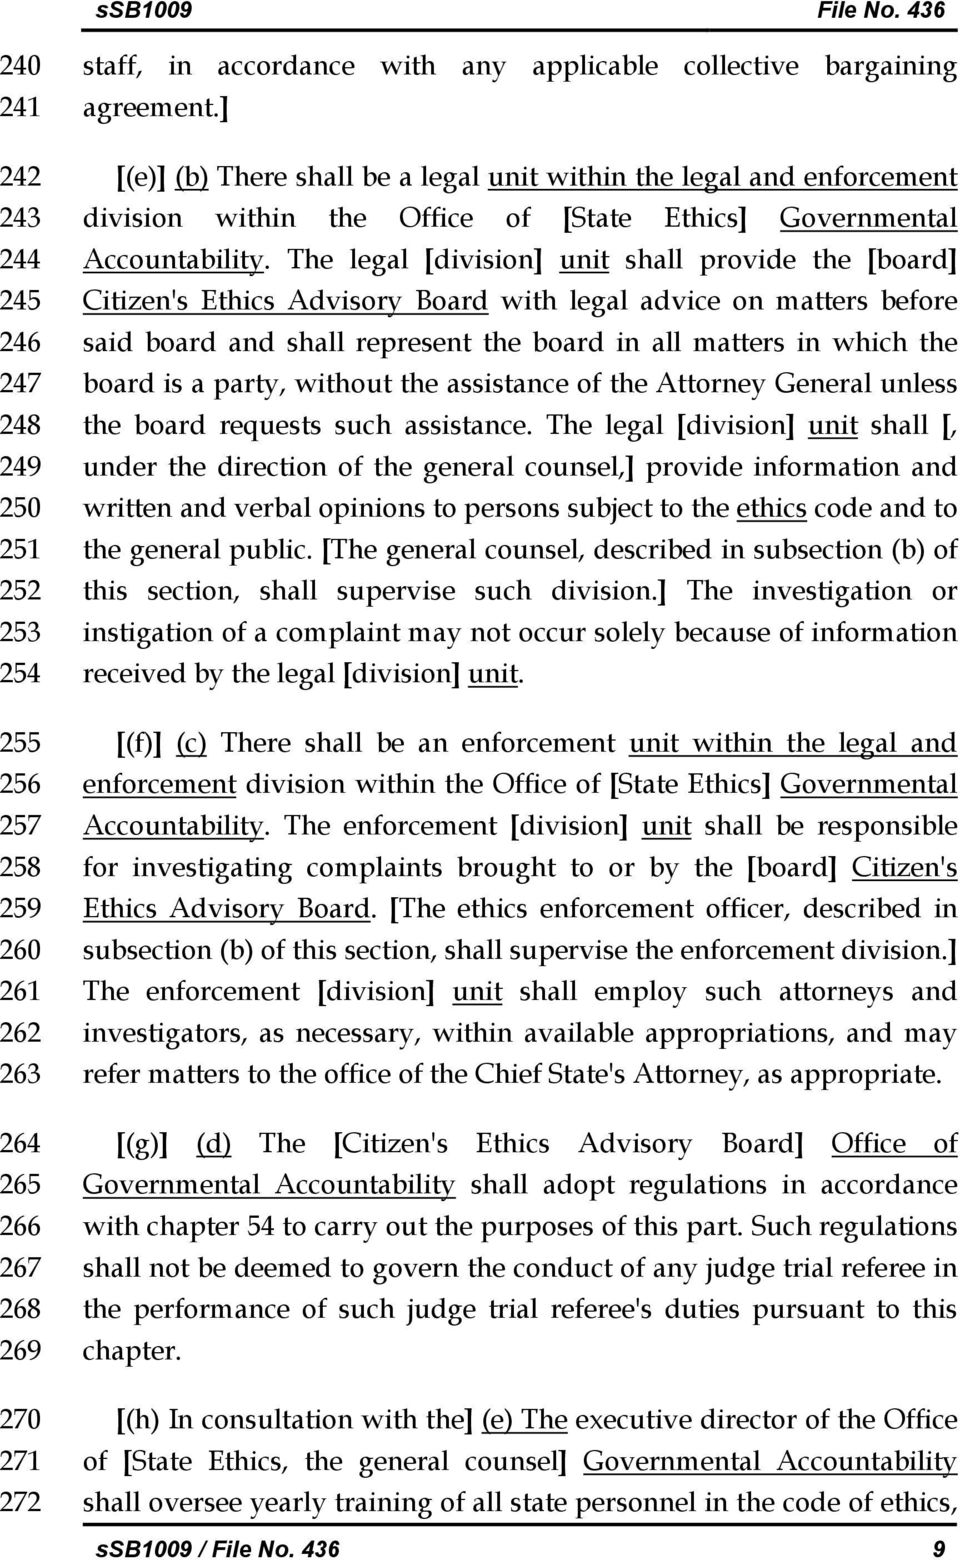 The legal [division] unit shall provide the [board] Citizen's Ethics Advisory Board with legal advice on matters before said board and shall represent the board in all matters in which the board is a